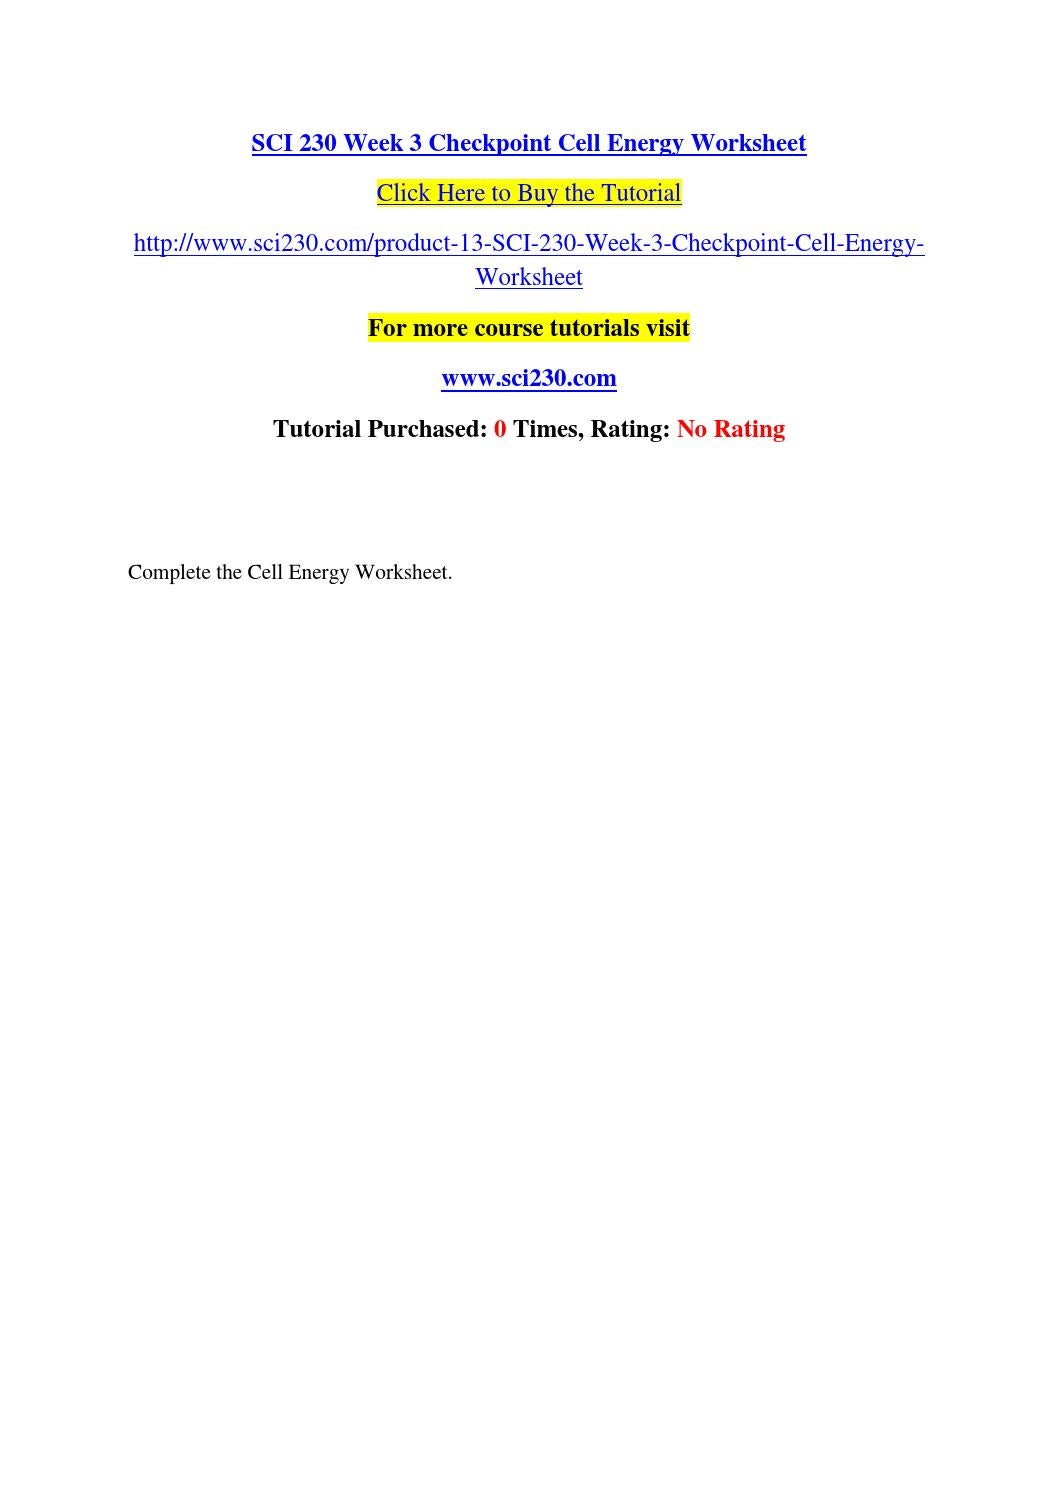 Sci 230 week 3 checkpoint cell energy worksheet by praveenaaa - issuu